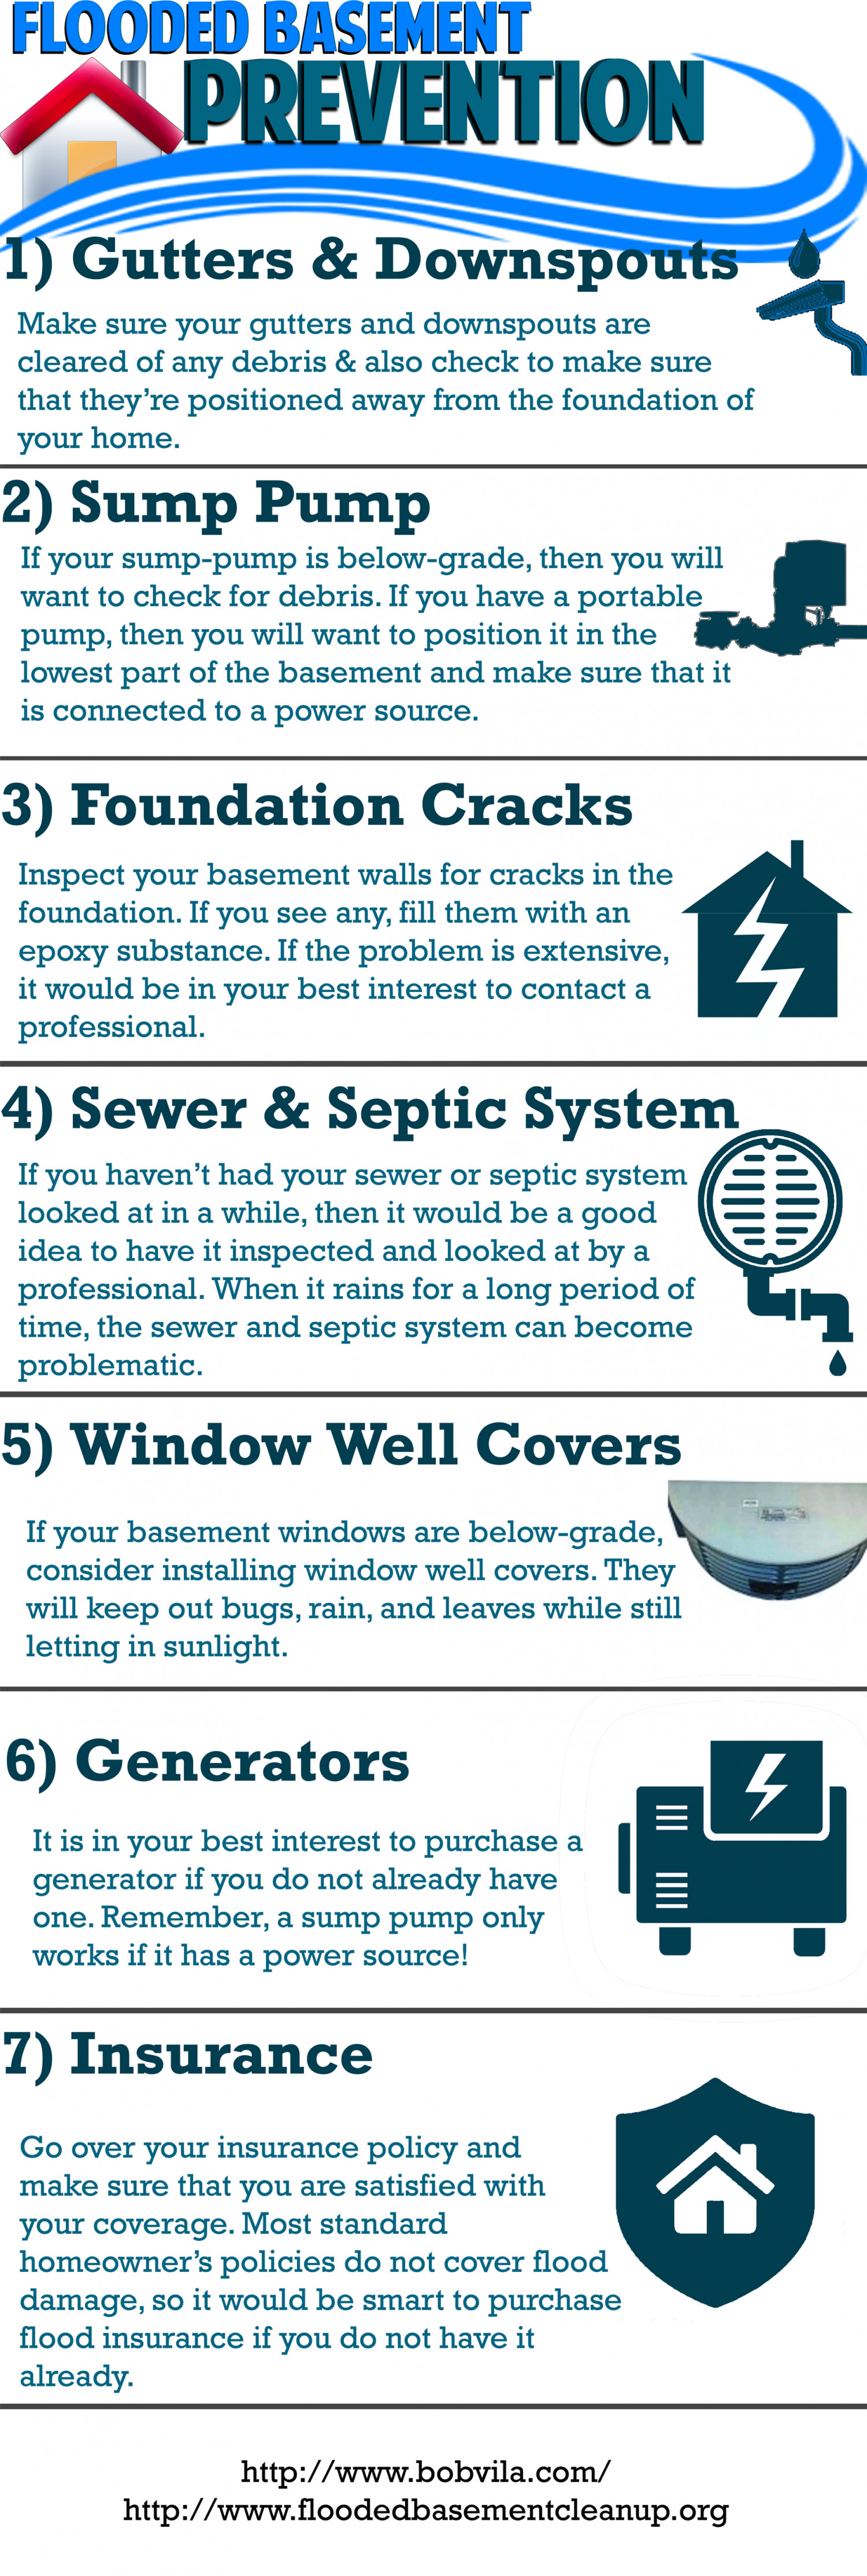 Flooded Basement Prevention For Spring Infographic